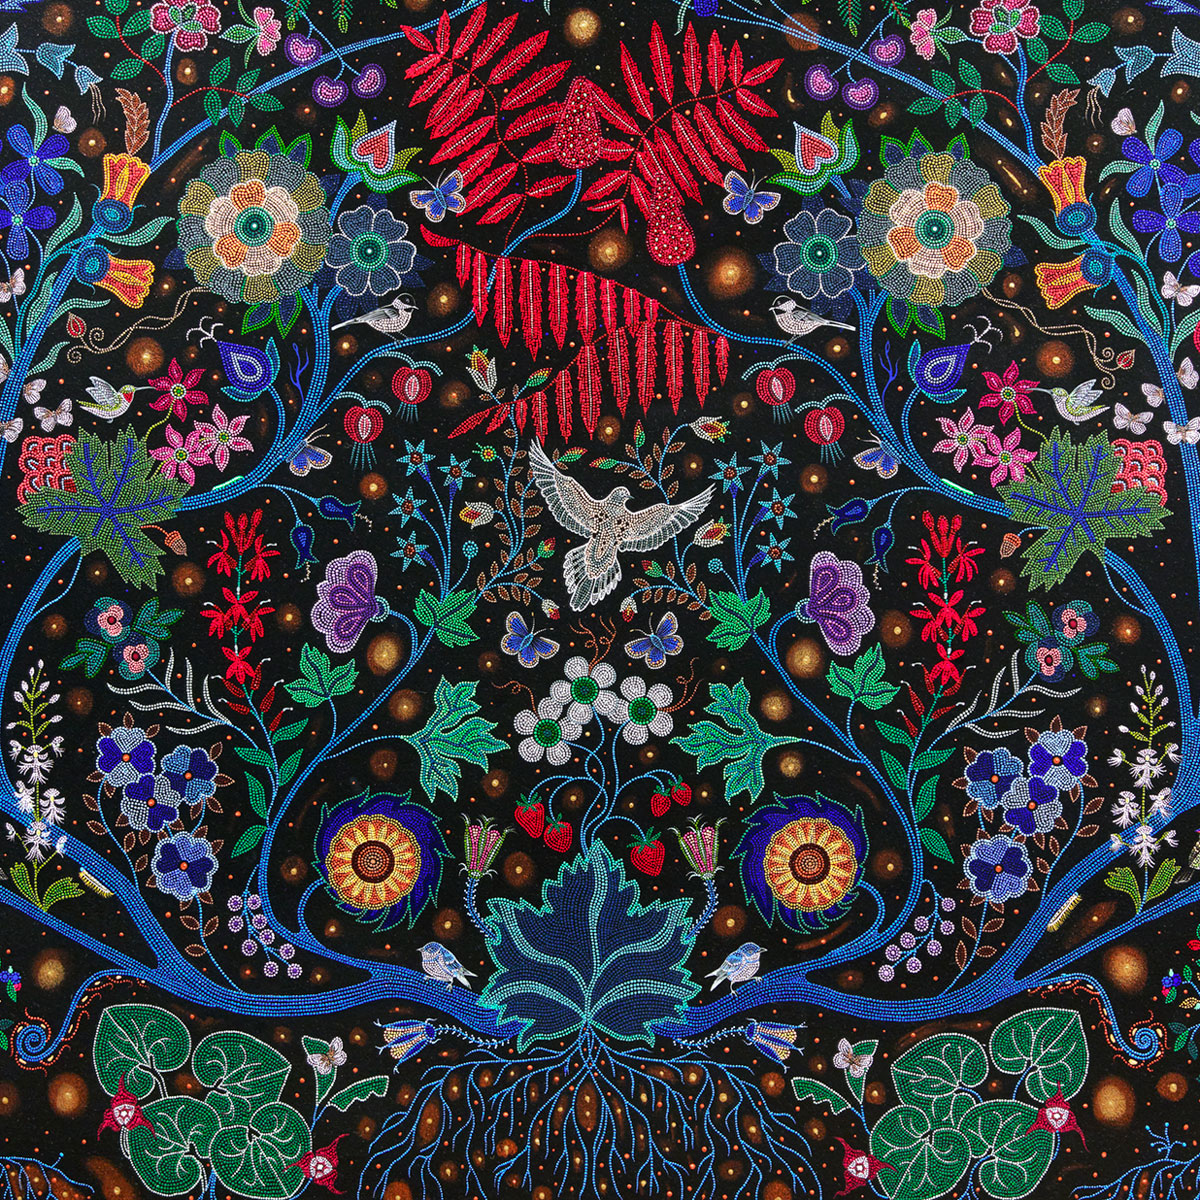 National Endowment for the Arts provided grant to the Philbrook Museum of Art to support Hearts of Our People: Native Women Artists in Tulsa, OK @Philbrook @repkevinhern @RepMullin @RepFrankLucas @TomColeOK04 @RepKendraHorn @OETAOK @OKArtsCouncil @kgounews @tulsaworldpic.twitter.com/yxUDU9zIiH